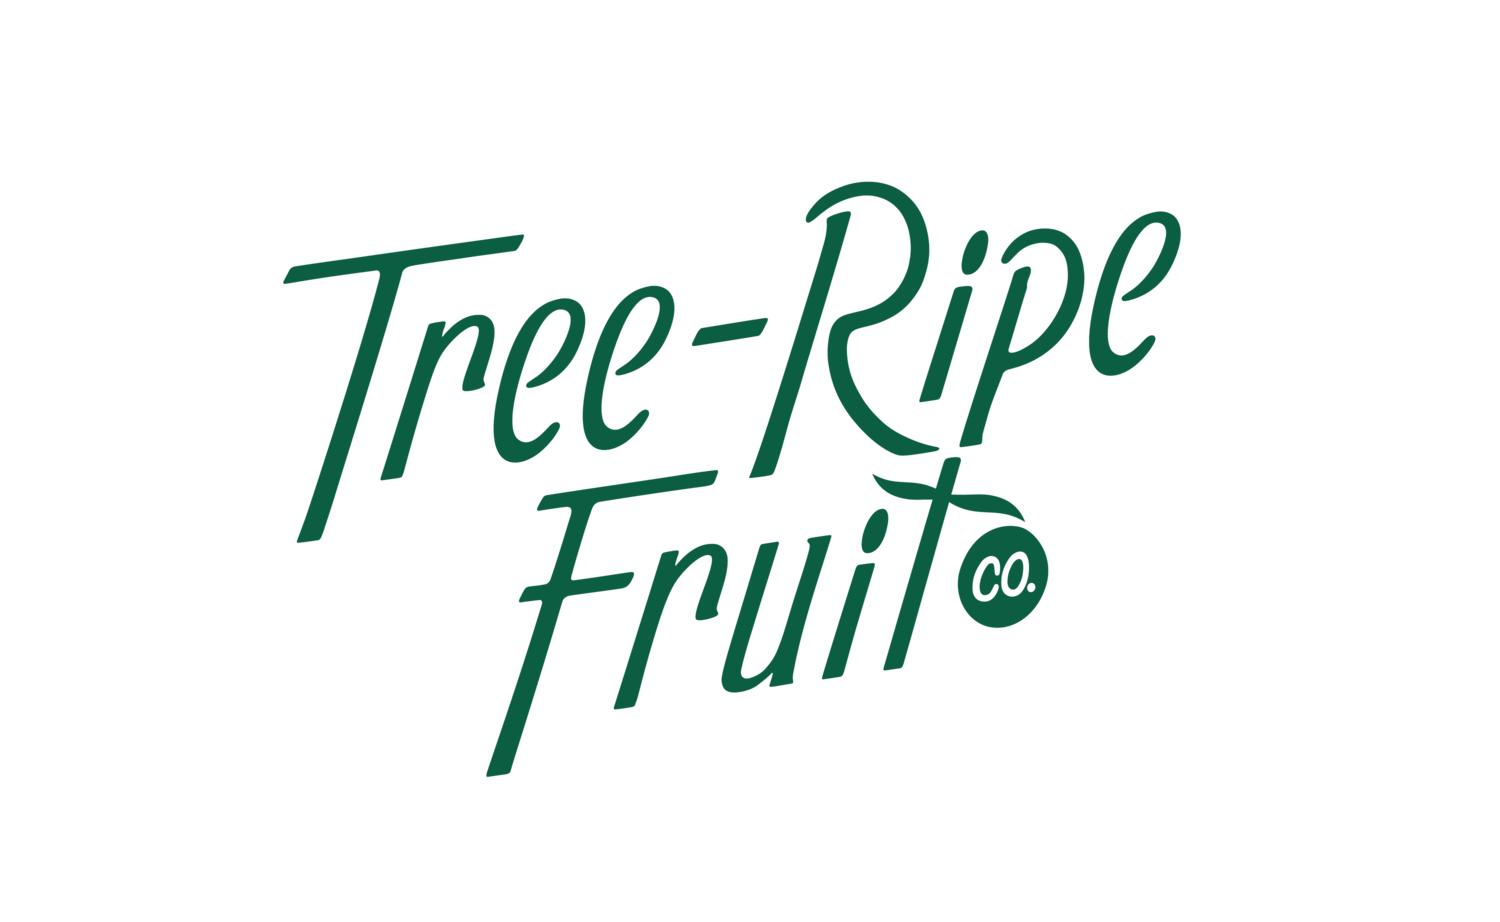 Tree-Ripe Fruit Co.